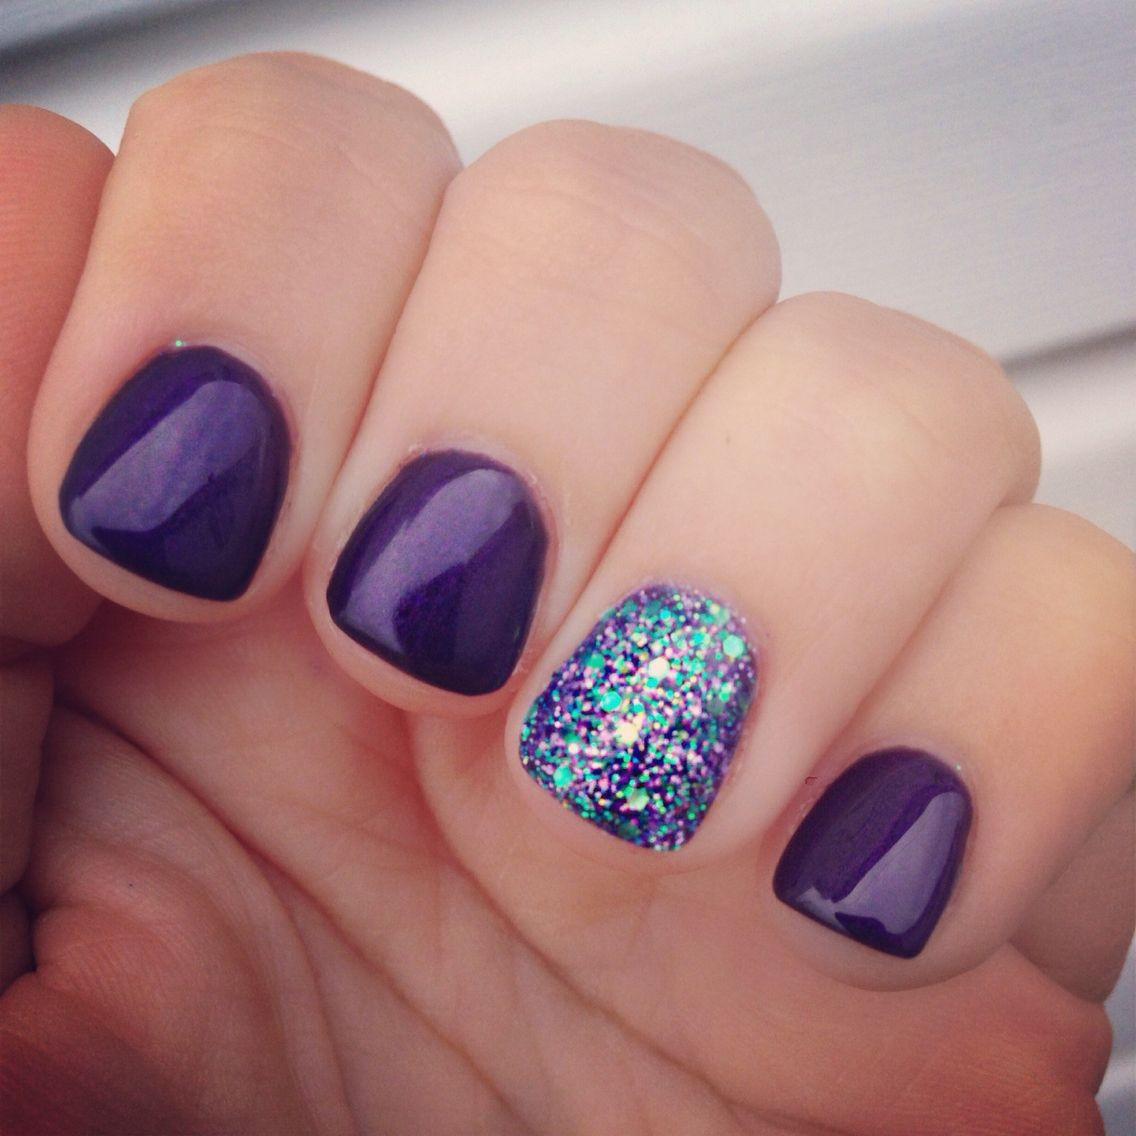 Peacock inspired nails #nailart #purple #glitter #peacock - Peacock Inspired Nails #nailart #purple #glitter #peacock Nail Art